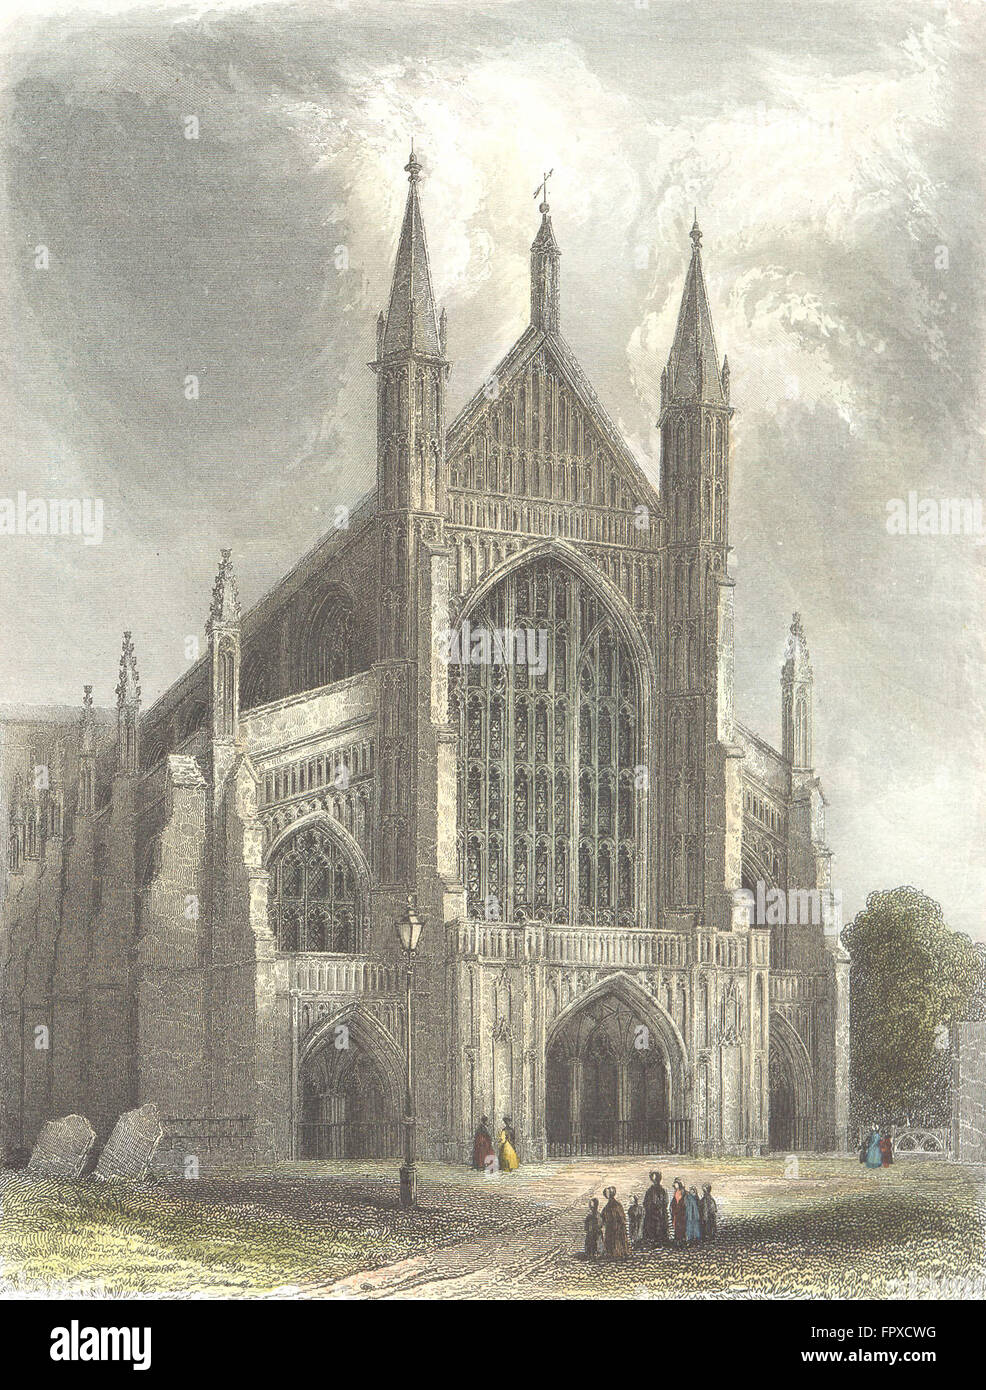 HANTS: Winchester Cathedral, antique print 1836 - Stock Image